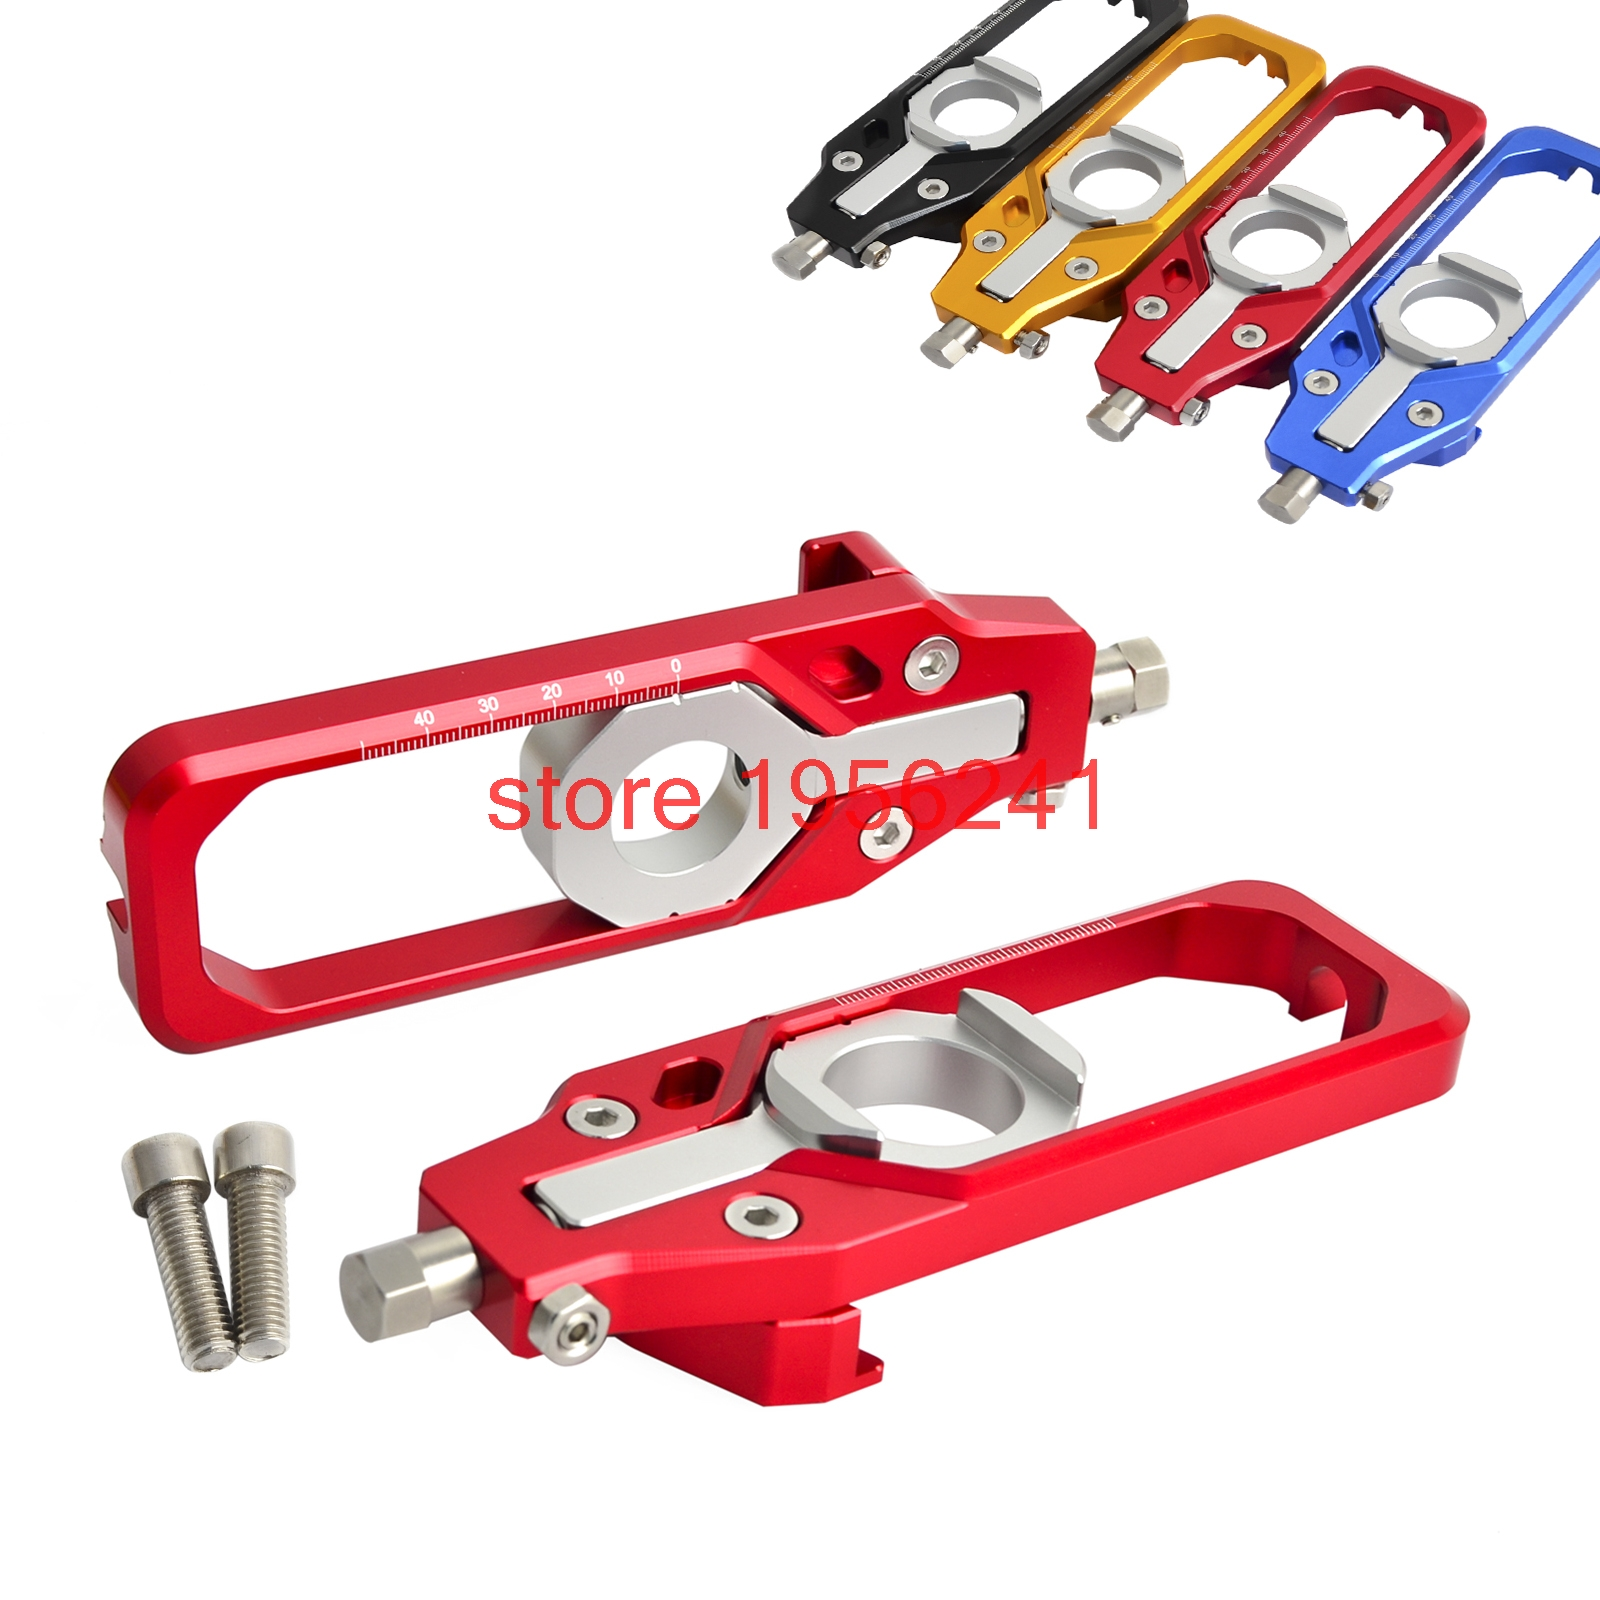 Motorcycle Chain Adjuster Tensioners For BMW HP4 2012 2013 2014 S1000R 2014-2017 S1000RR 2010-2017 120cm play mat baby blanket inflant game play mats carpet child toy climb mat indoor developing rug crawling rug carpet blanket